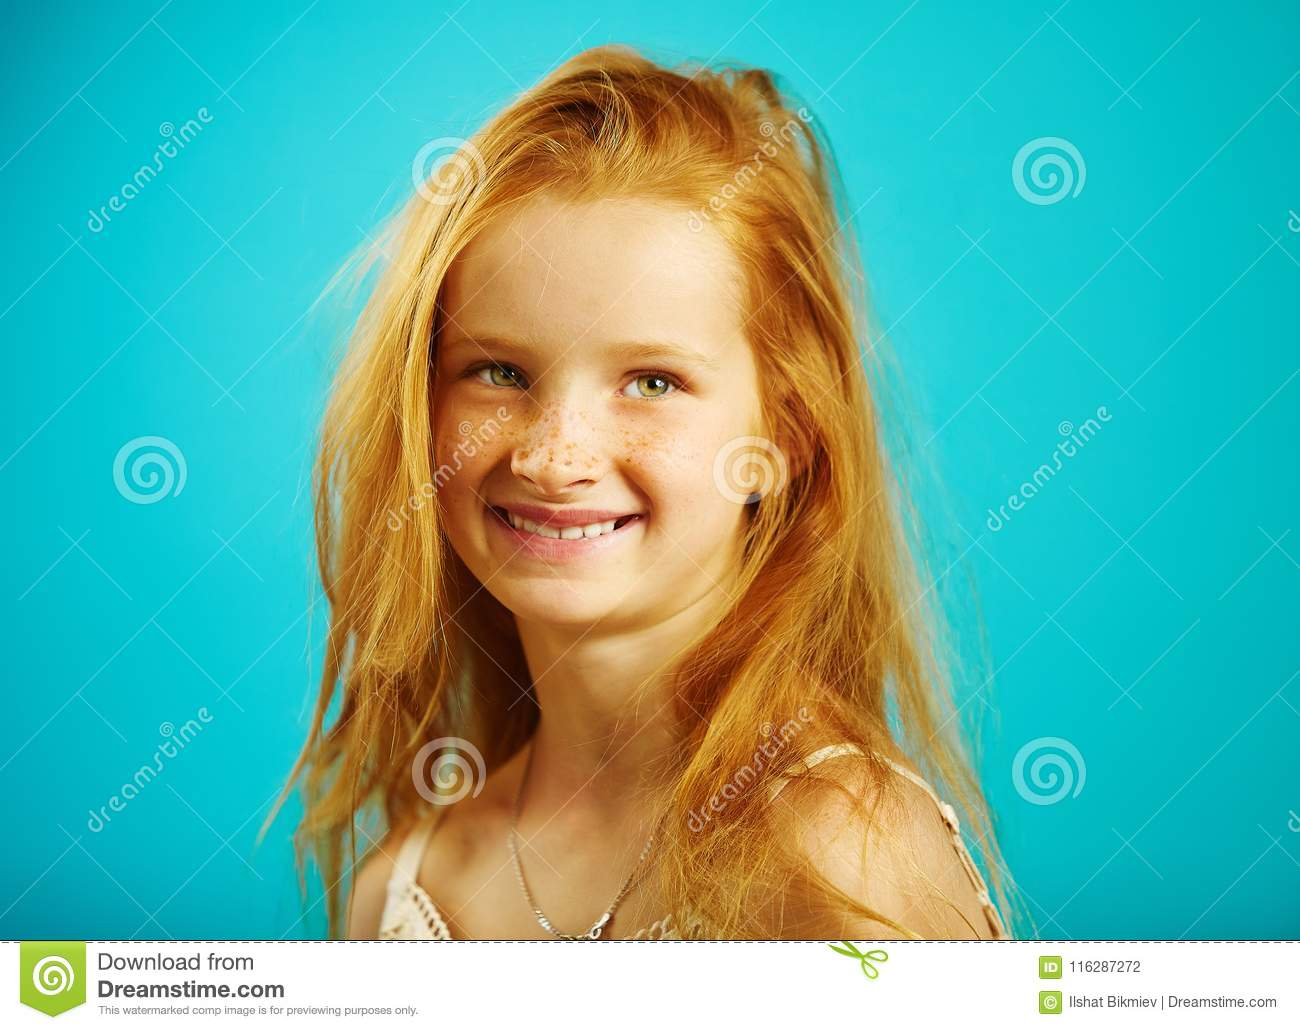 Portrait of little girl seven years old with fiery red hair, cute freckles, smiling sincerely, expresses confidence and